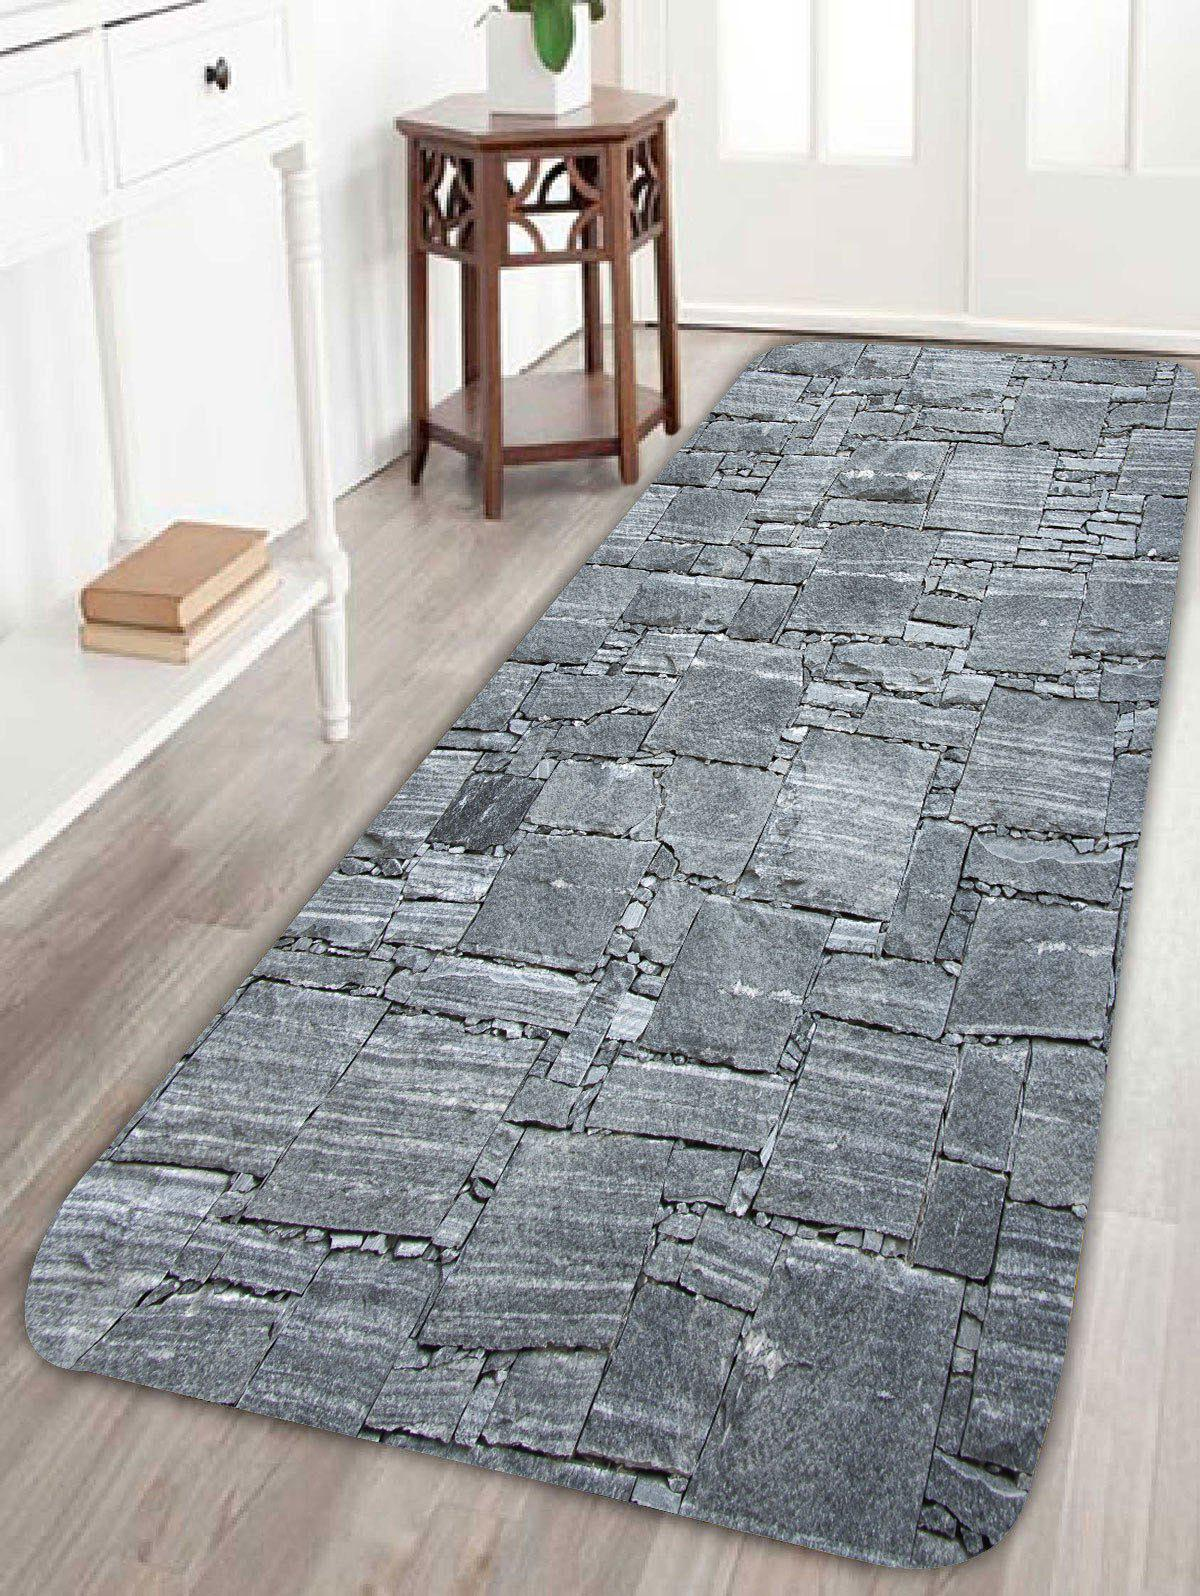 Coral Fleece Slabstone Pattern Large Door MatHOME<br><br>Size: W24 INCH * L71 INCH; Color: GRAY; Products Type: Bath rugs; Materials: Coral FLeece; Pattern: Print; Style: Vintage; Shape: Rectangle; Package Contents: 1 x Rug;